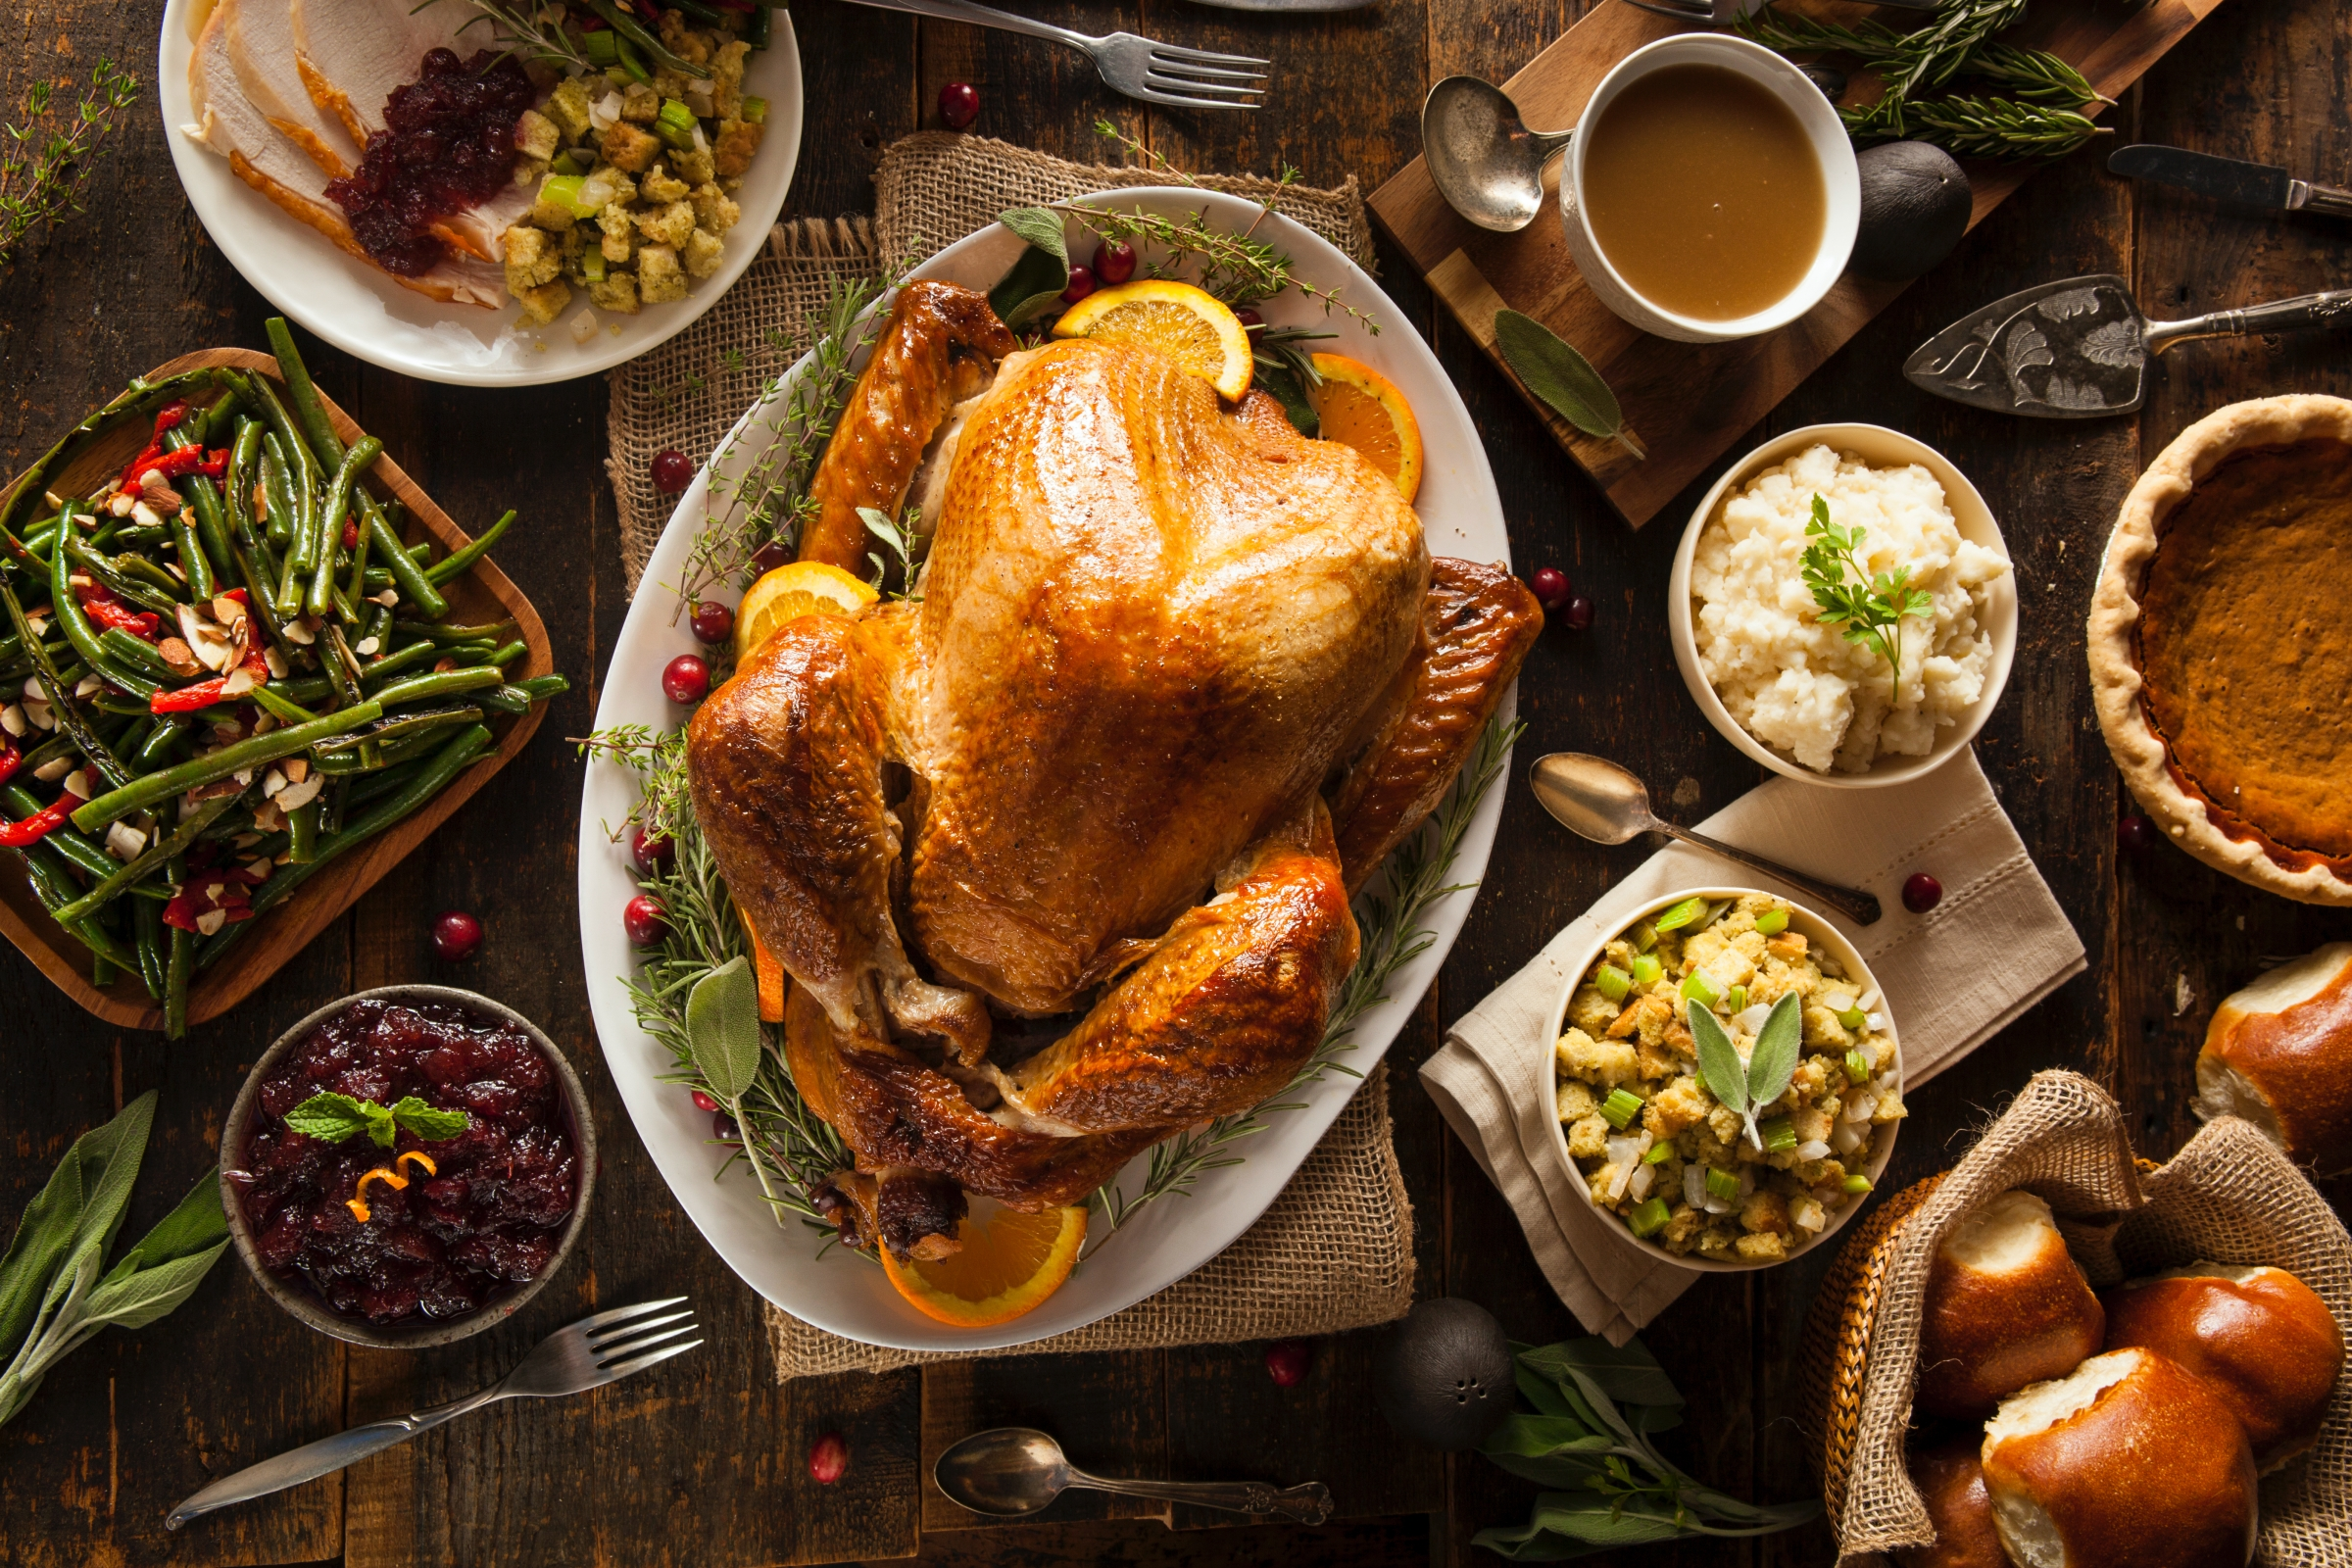 The First Thanksgivingteach To Be Happy